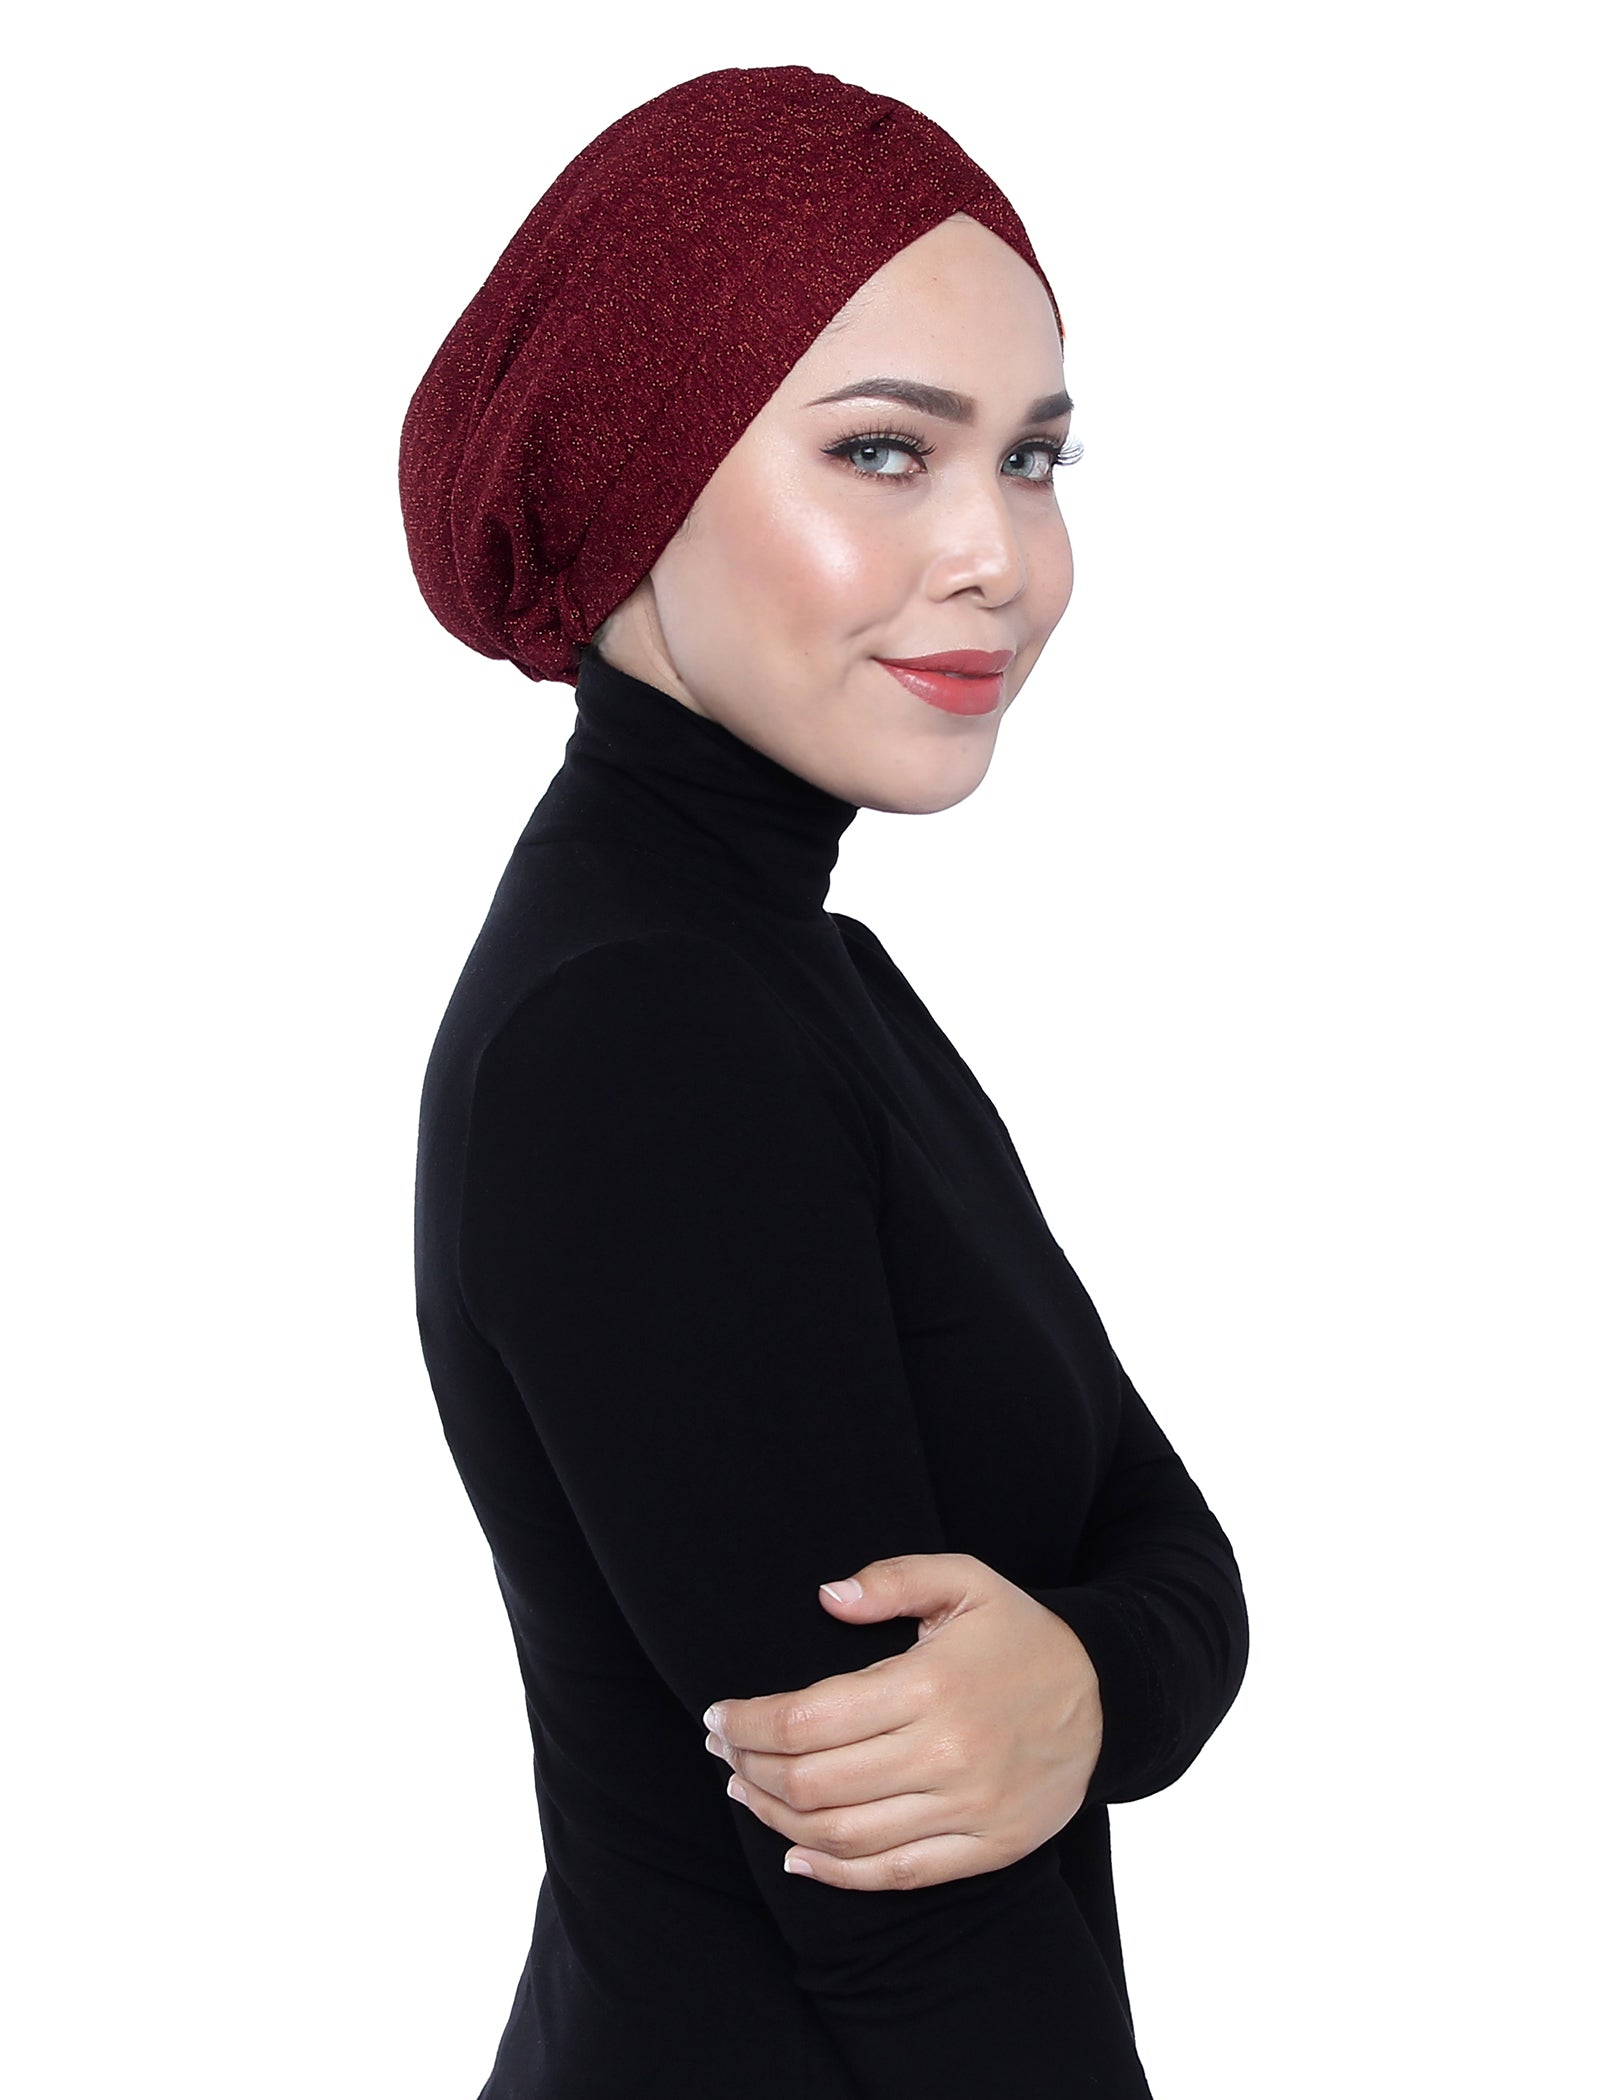 Gold Knit Jersey Turban - Rhubarb Red